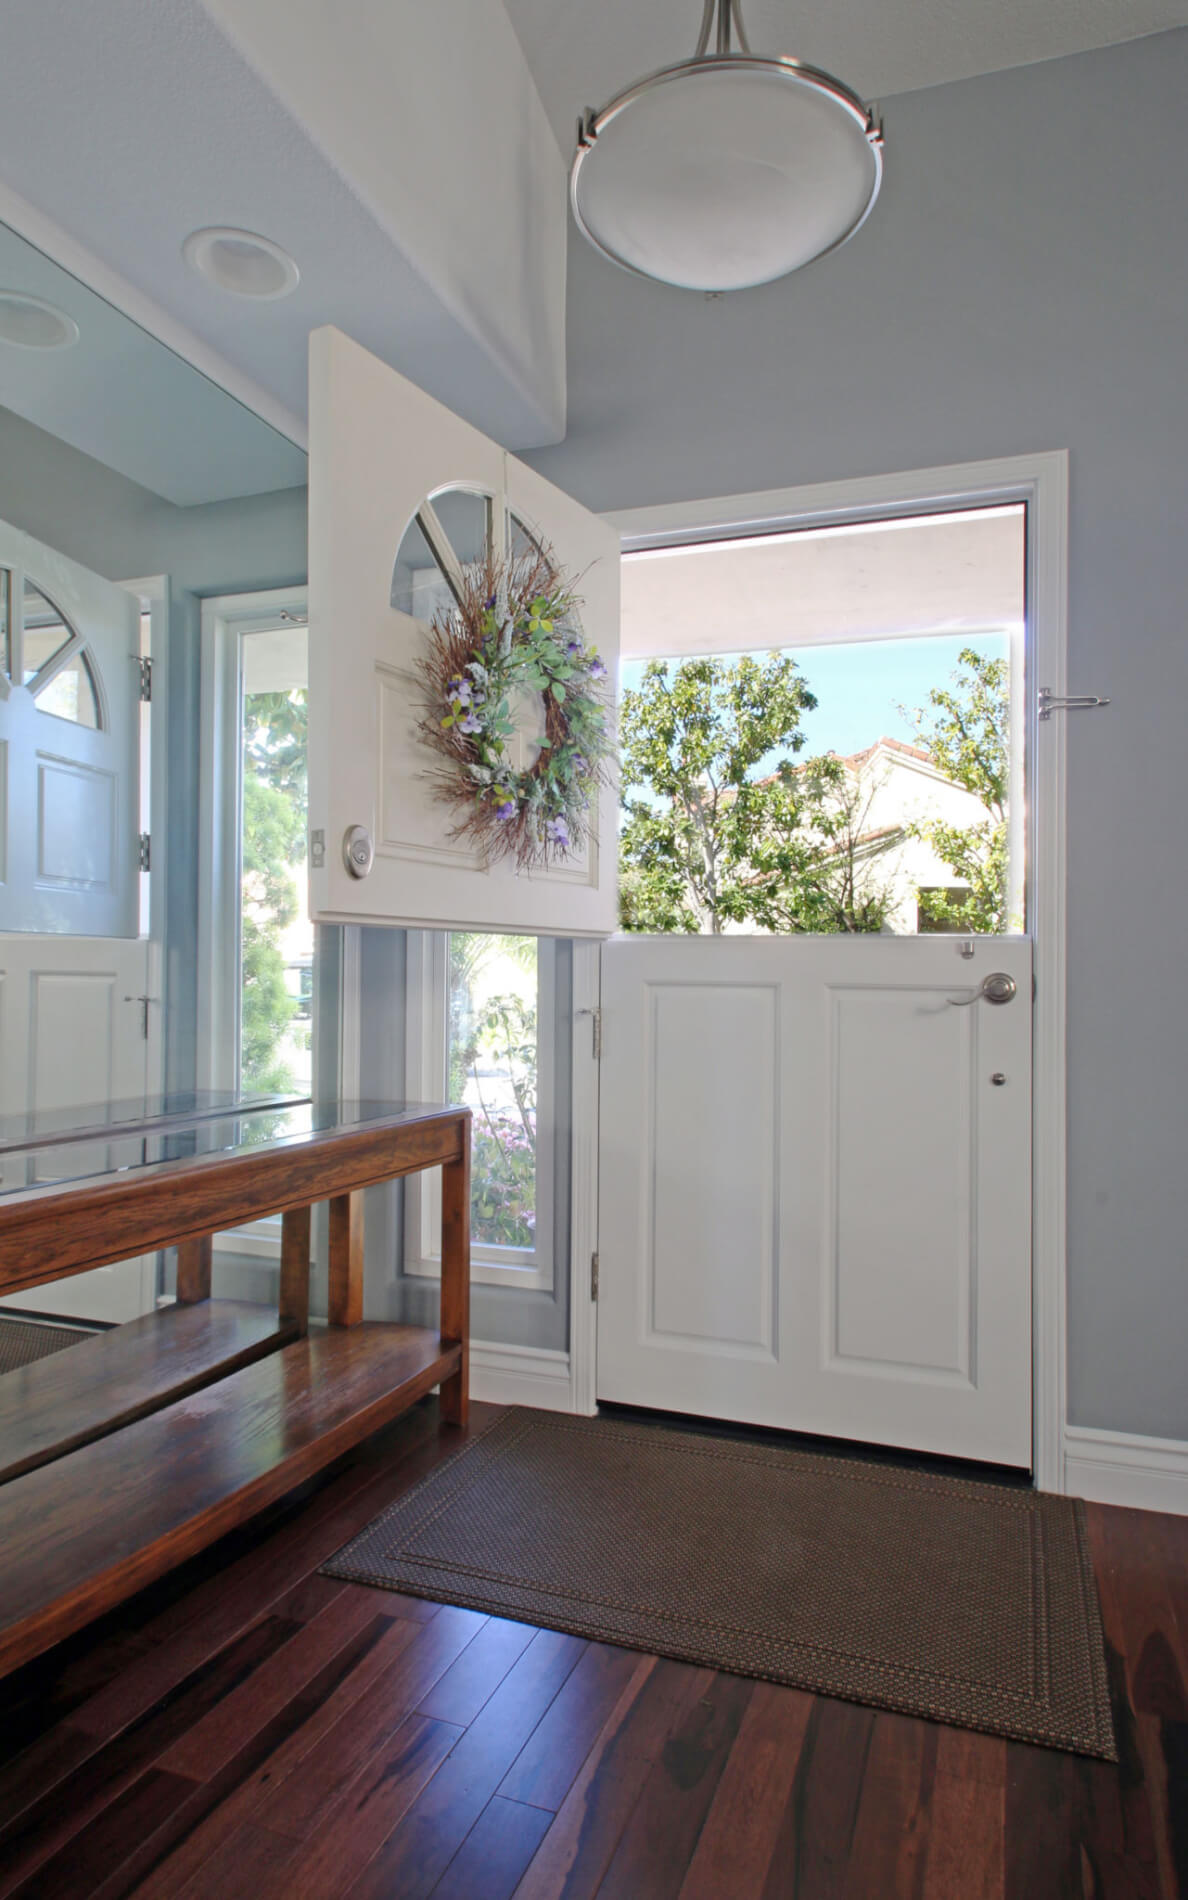 Barn Door Remodel Orange County, Orange County Home Remodel includes a Pocket Door,